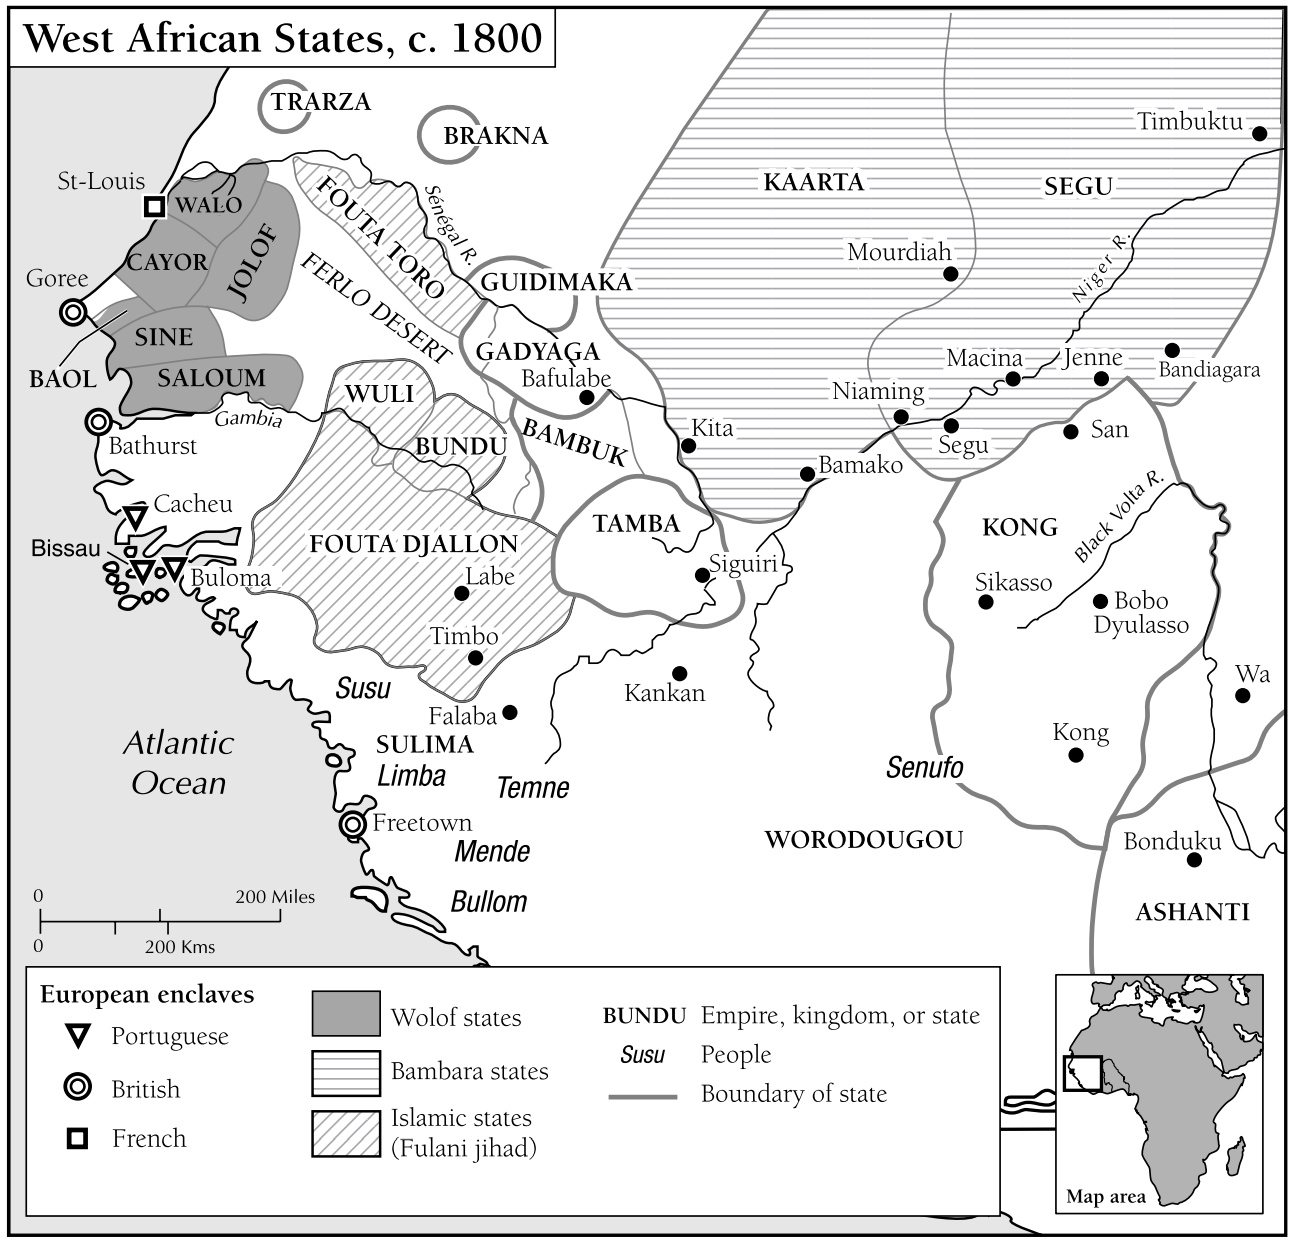 Map showing the Bambara kingdoms of Ségou and Kaarta among other West African states of the 1800s